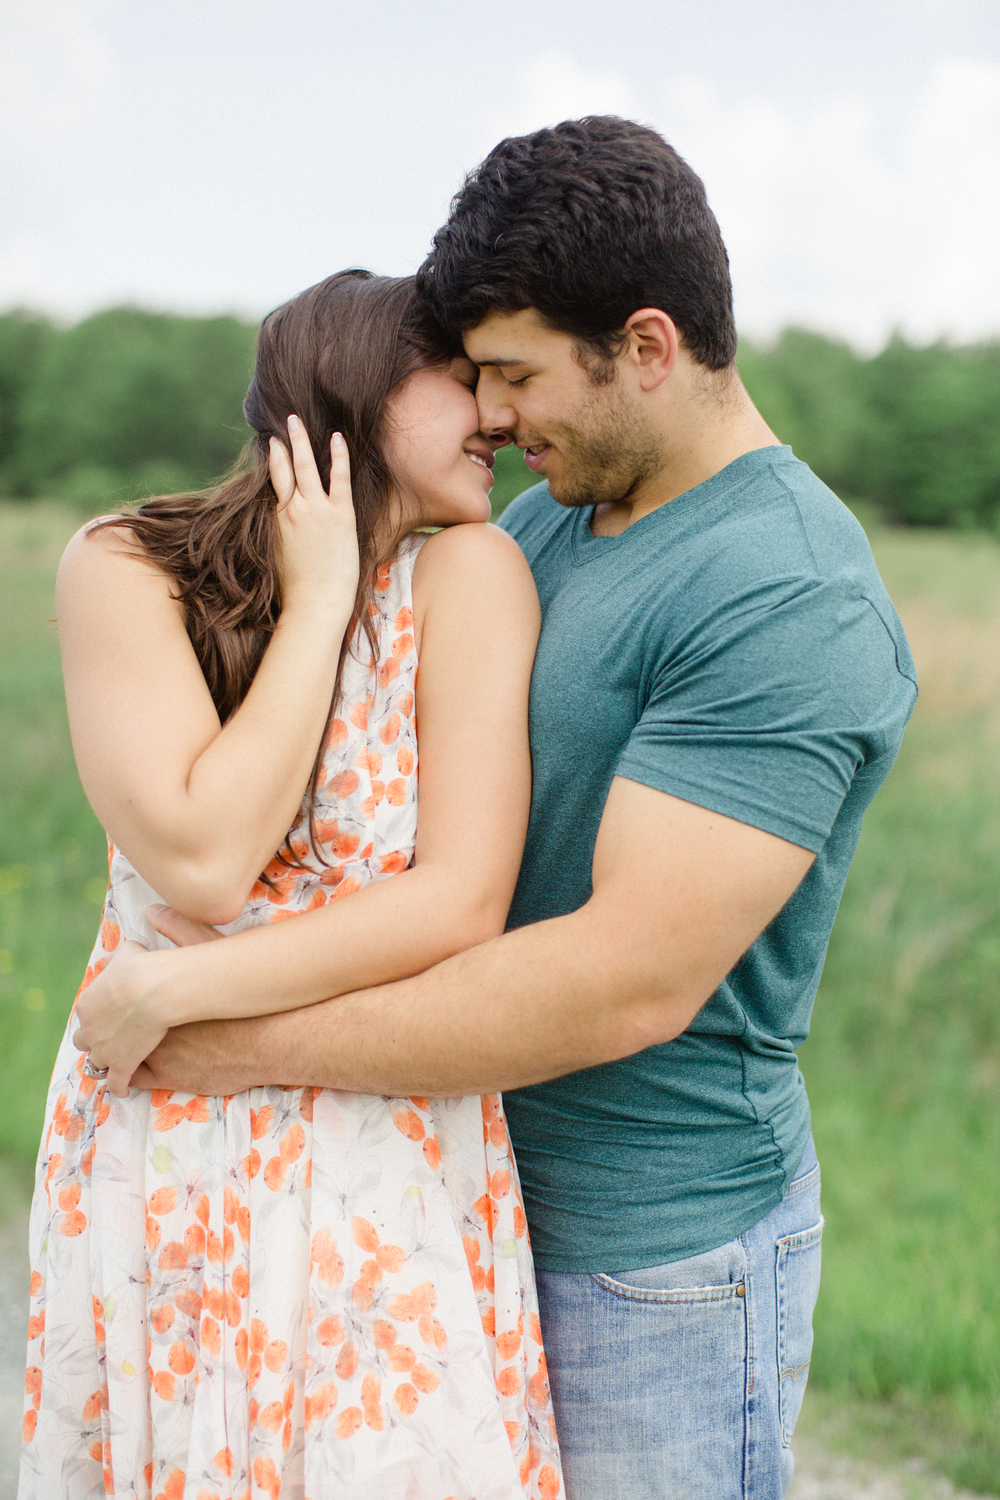 Scranton PA Rustic Romantic Engagement Session Photographers Jordan DeNike_JDP-53.jpg